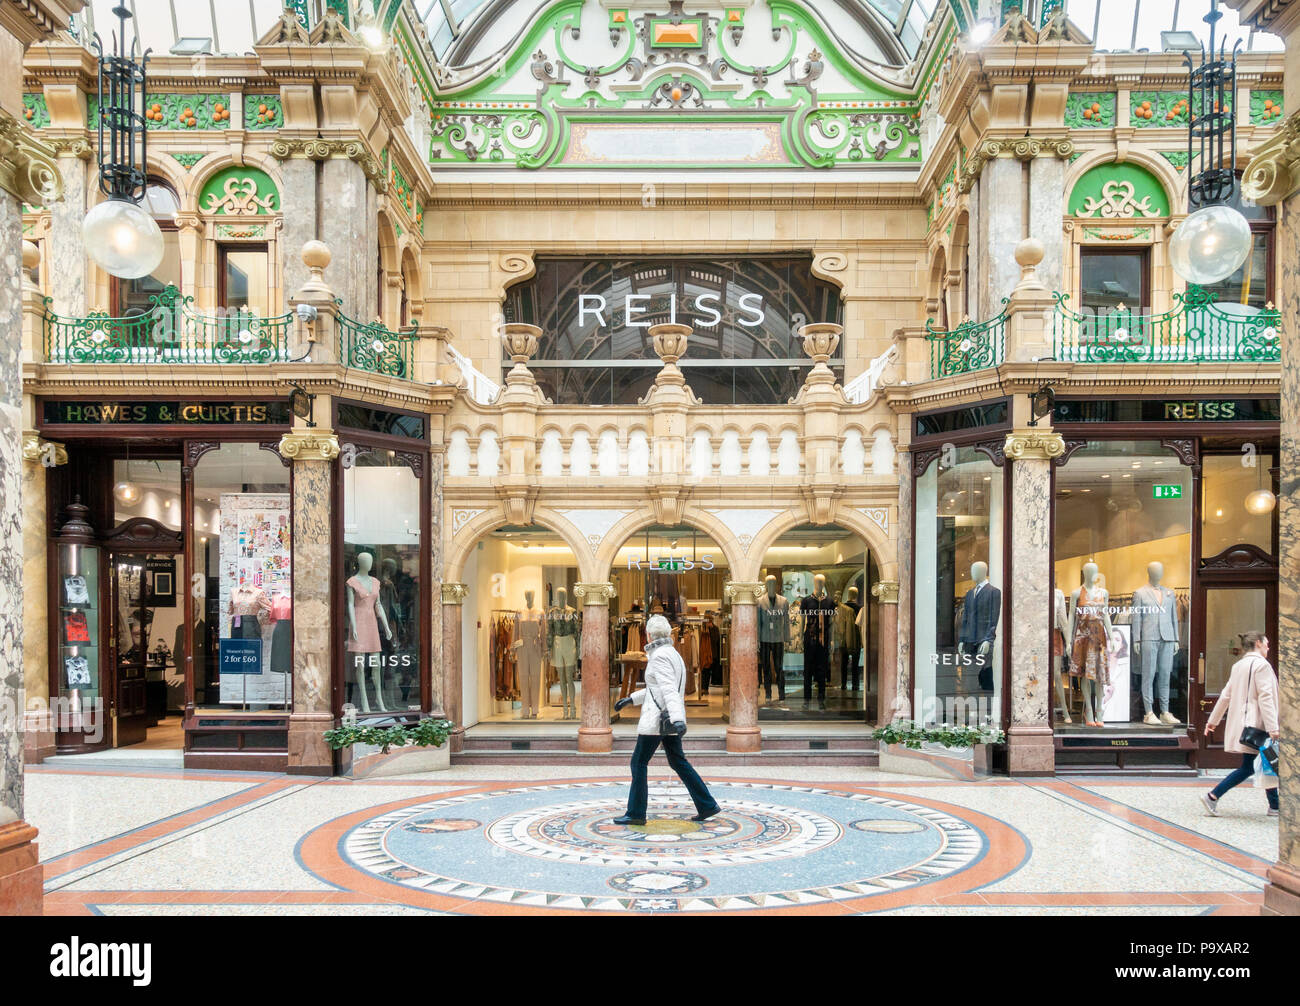 Shopping in Victoria Quarter, County Arcade in Leeds city centre. Leeds, Yorkshire, England. UK - Stock Image